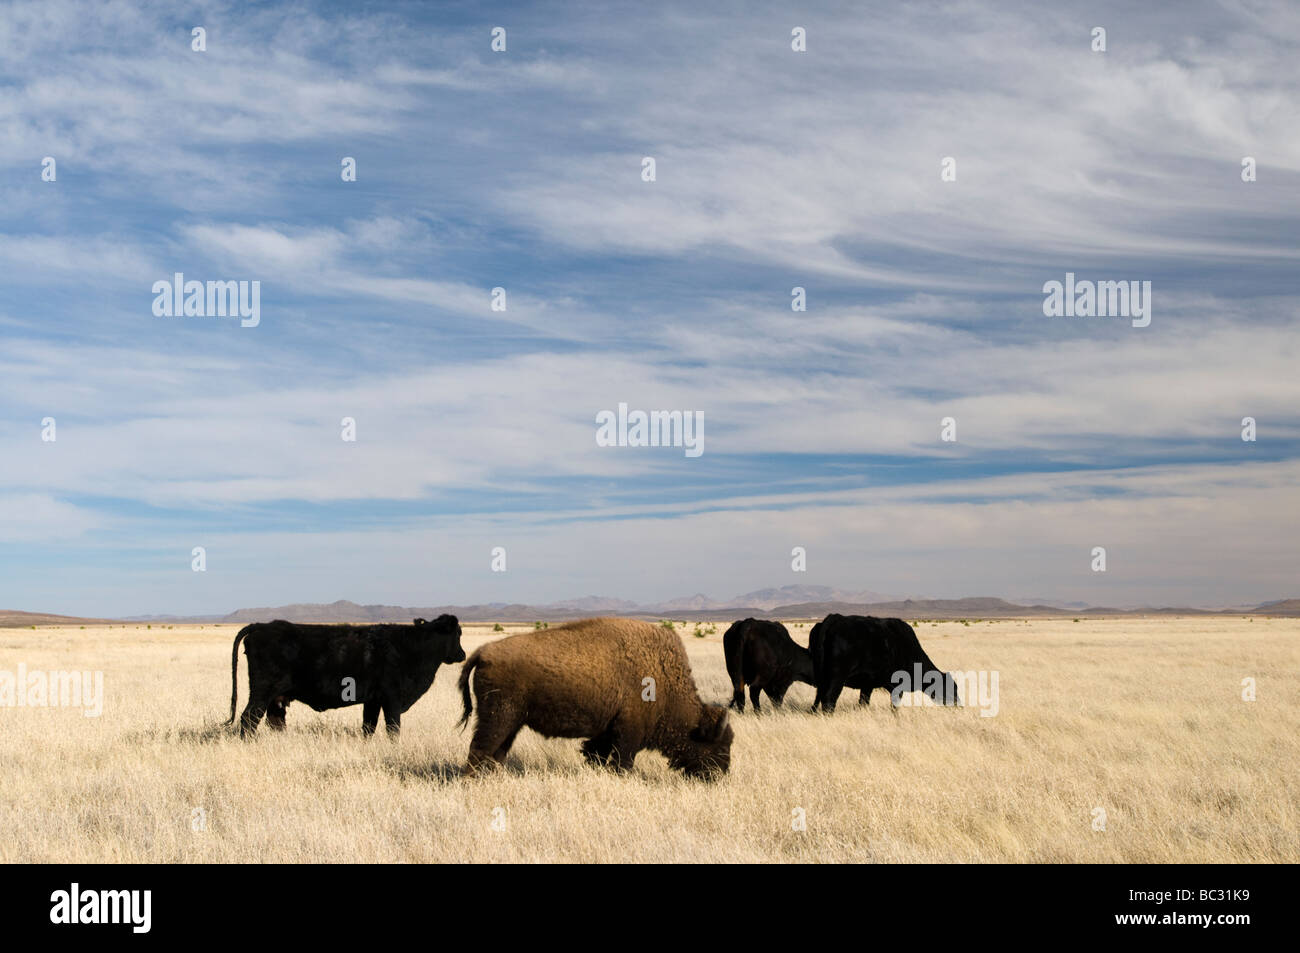 A feral bison mixes with cattle on the US/Mexico border, Chihuahua. - Stock Image